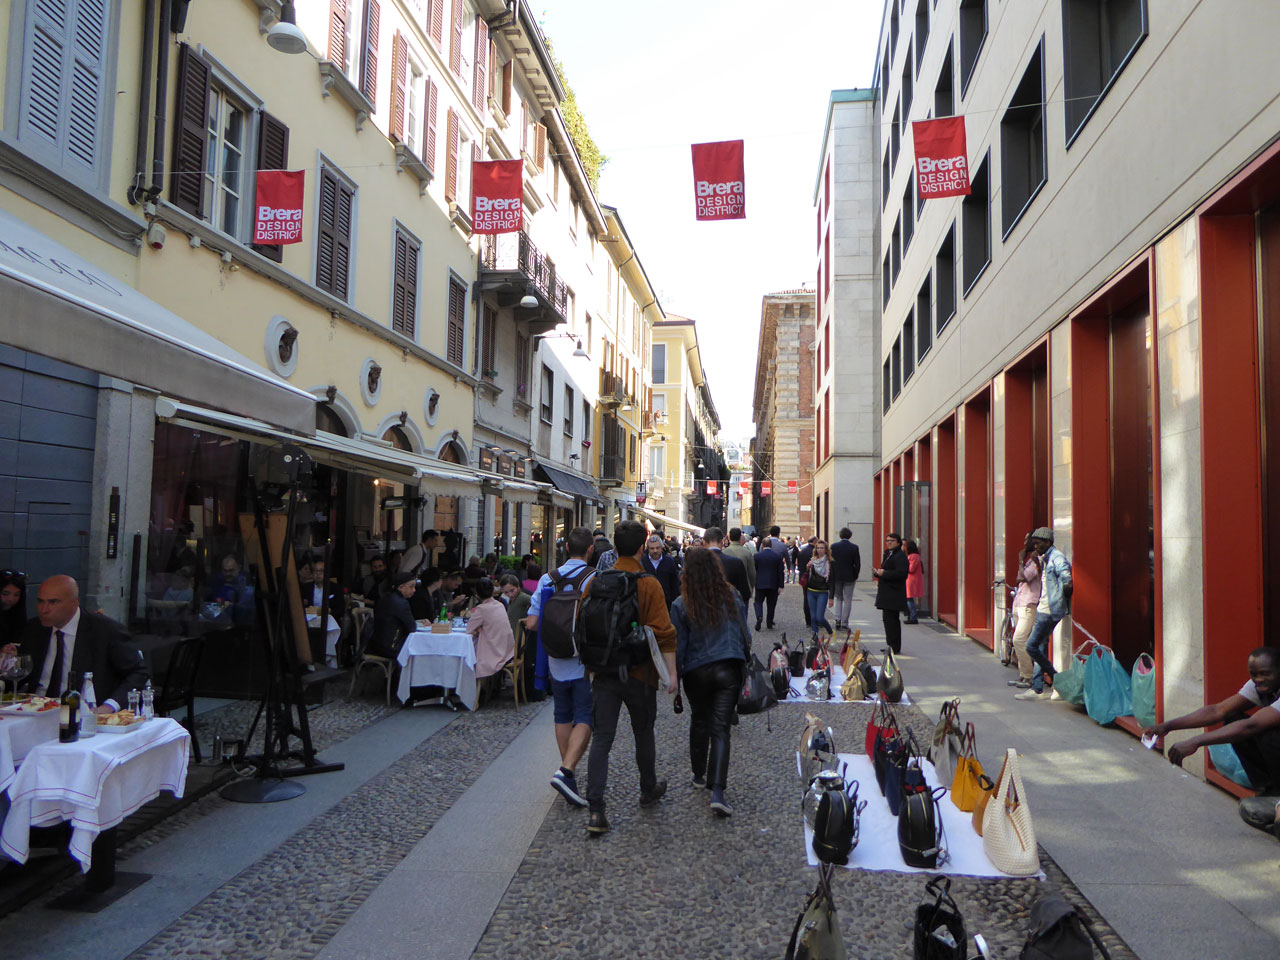 Brera, Milan's 'Design District'